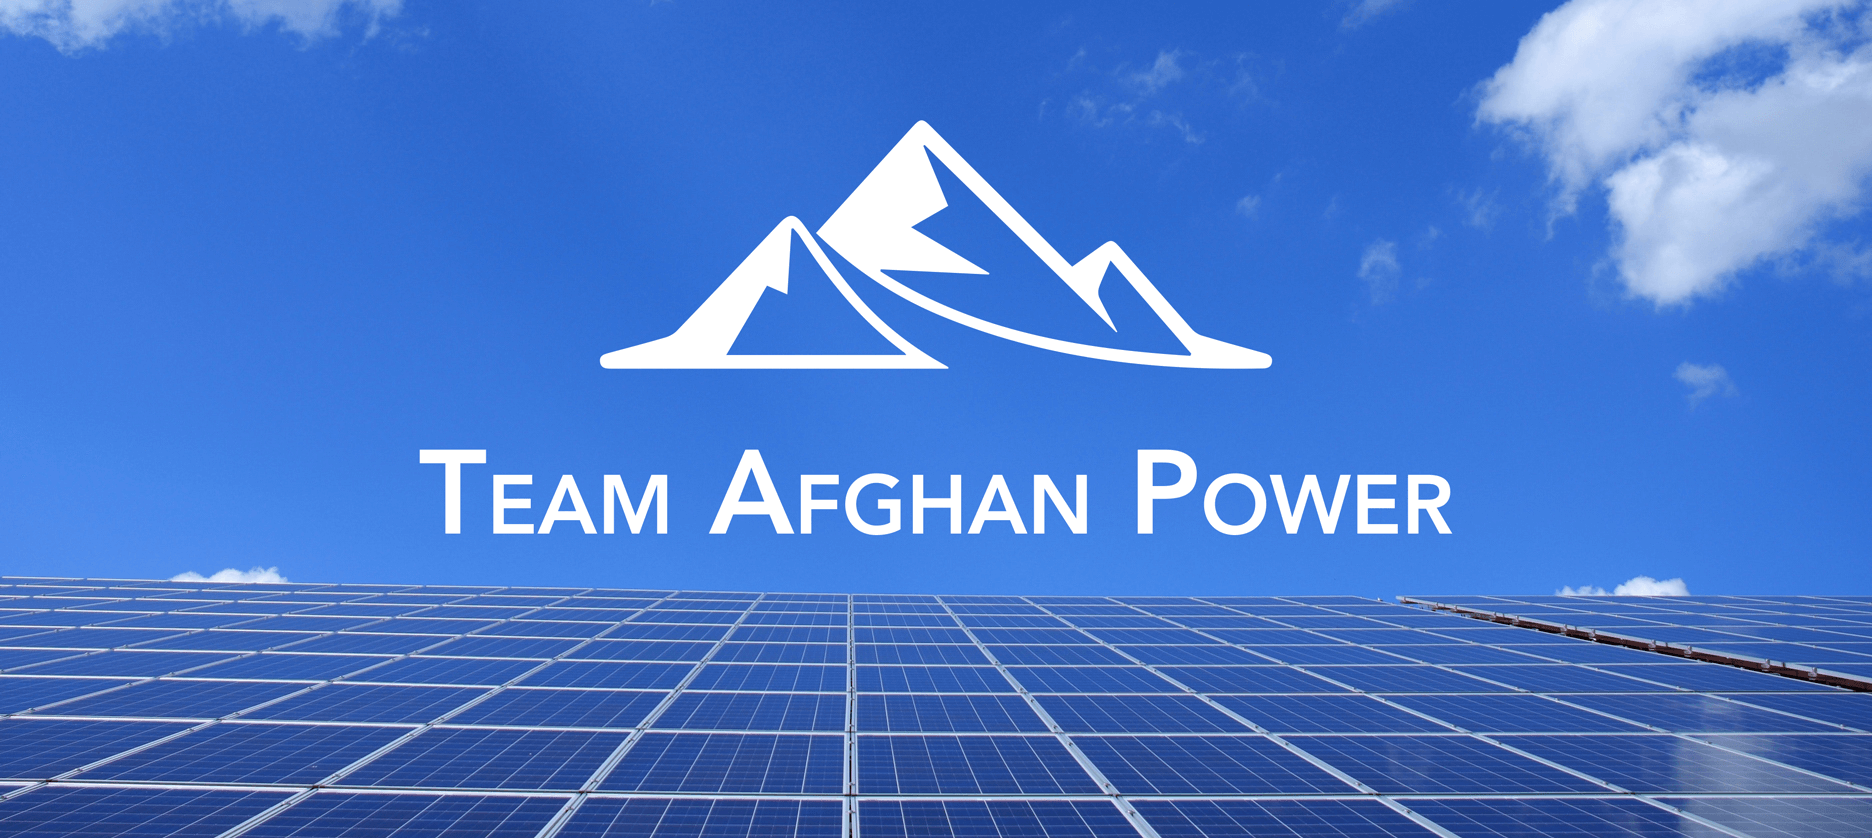 Team-Afghan-Power-email-cover-1